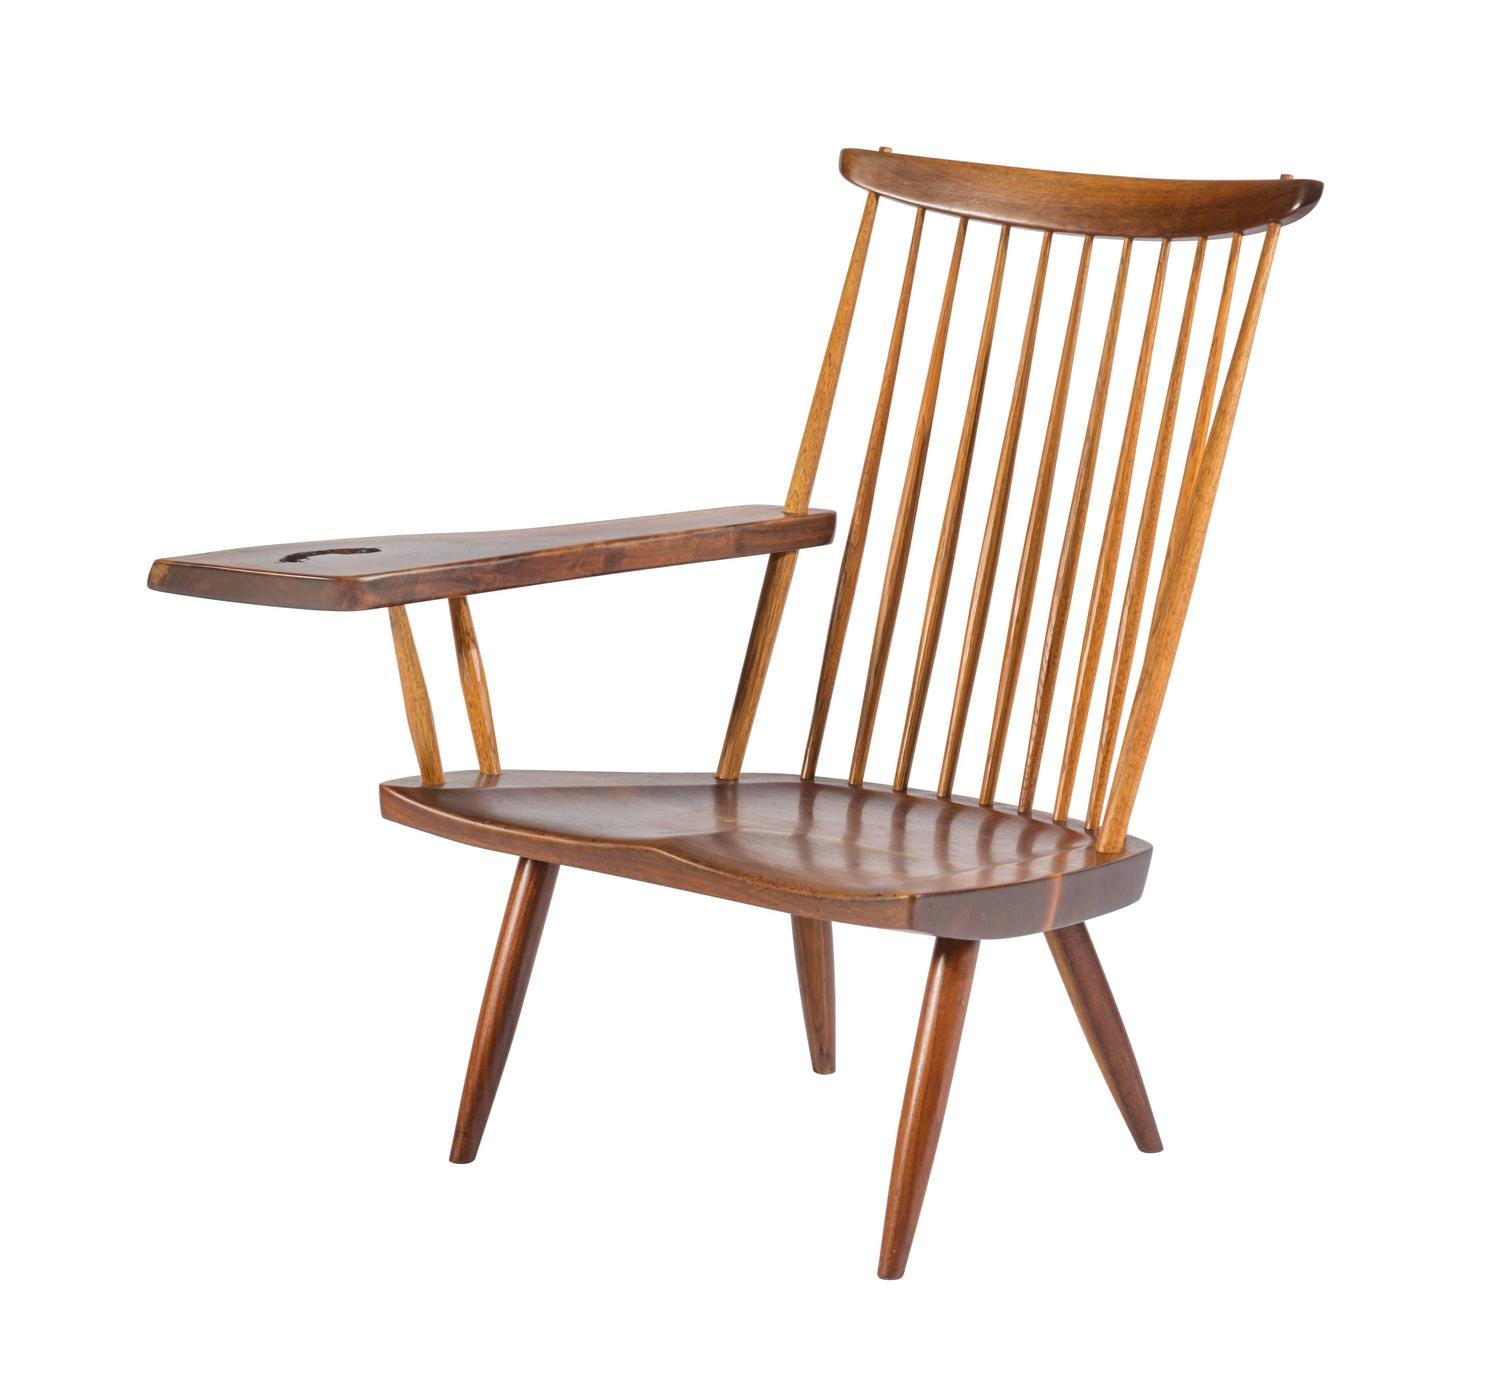 Nakashima lounge chair with single arm for sale at 1stdibs for Single lounge chairs for sale